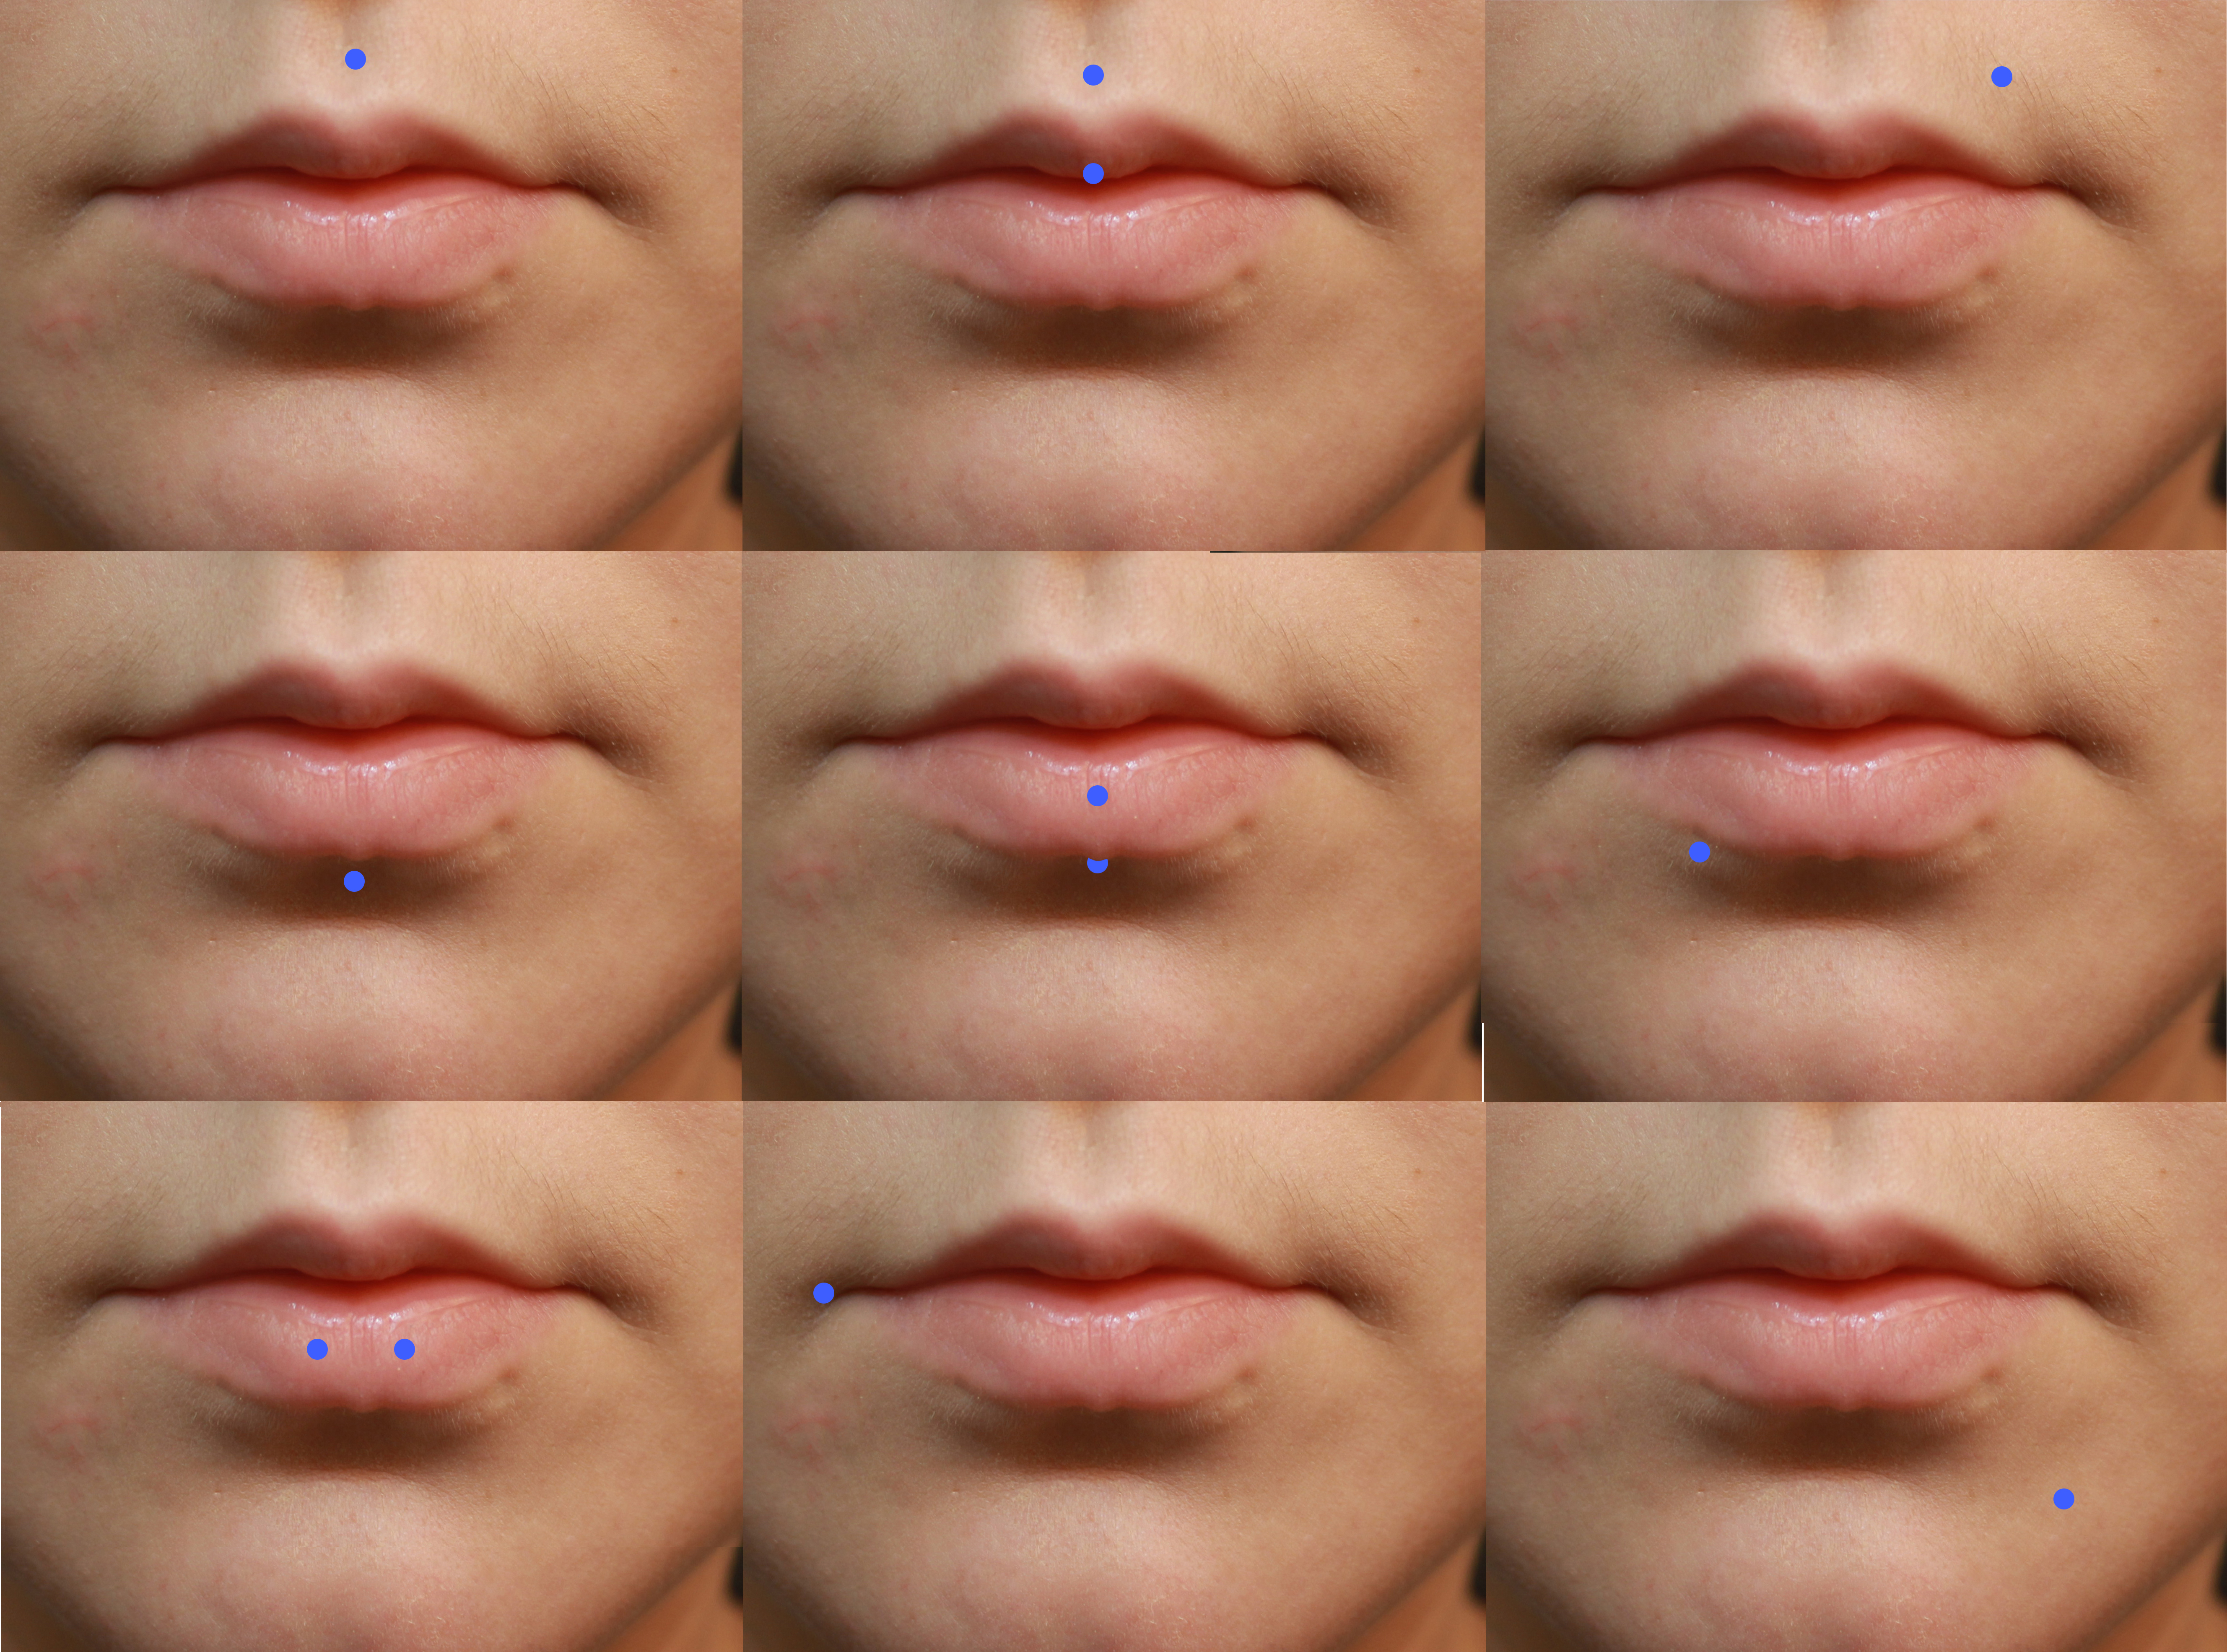 How to Get a Labret Piercing advise